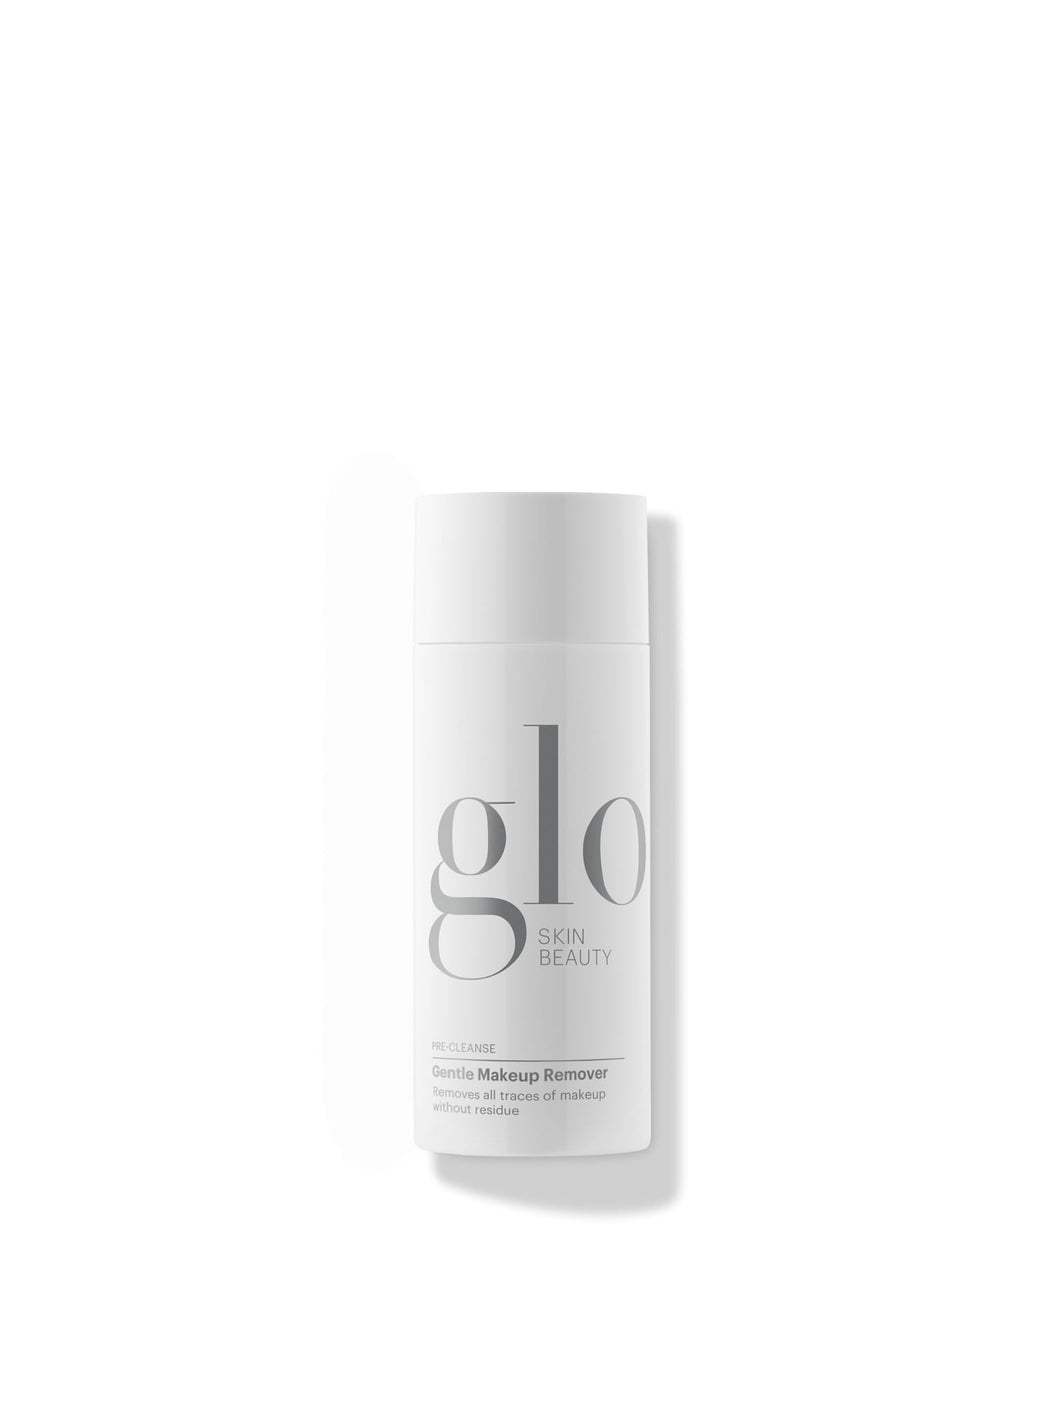 Glo Gentle Makeup Remover